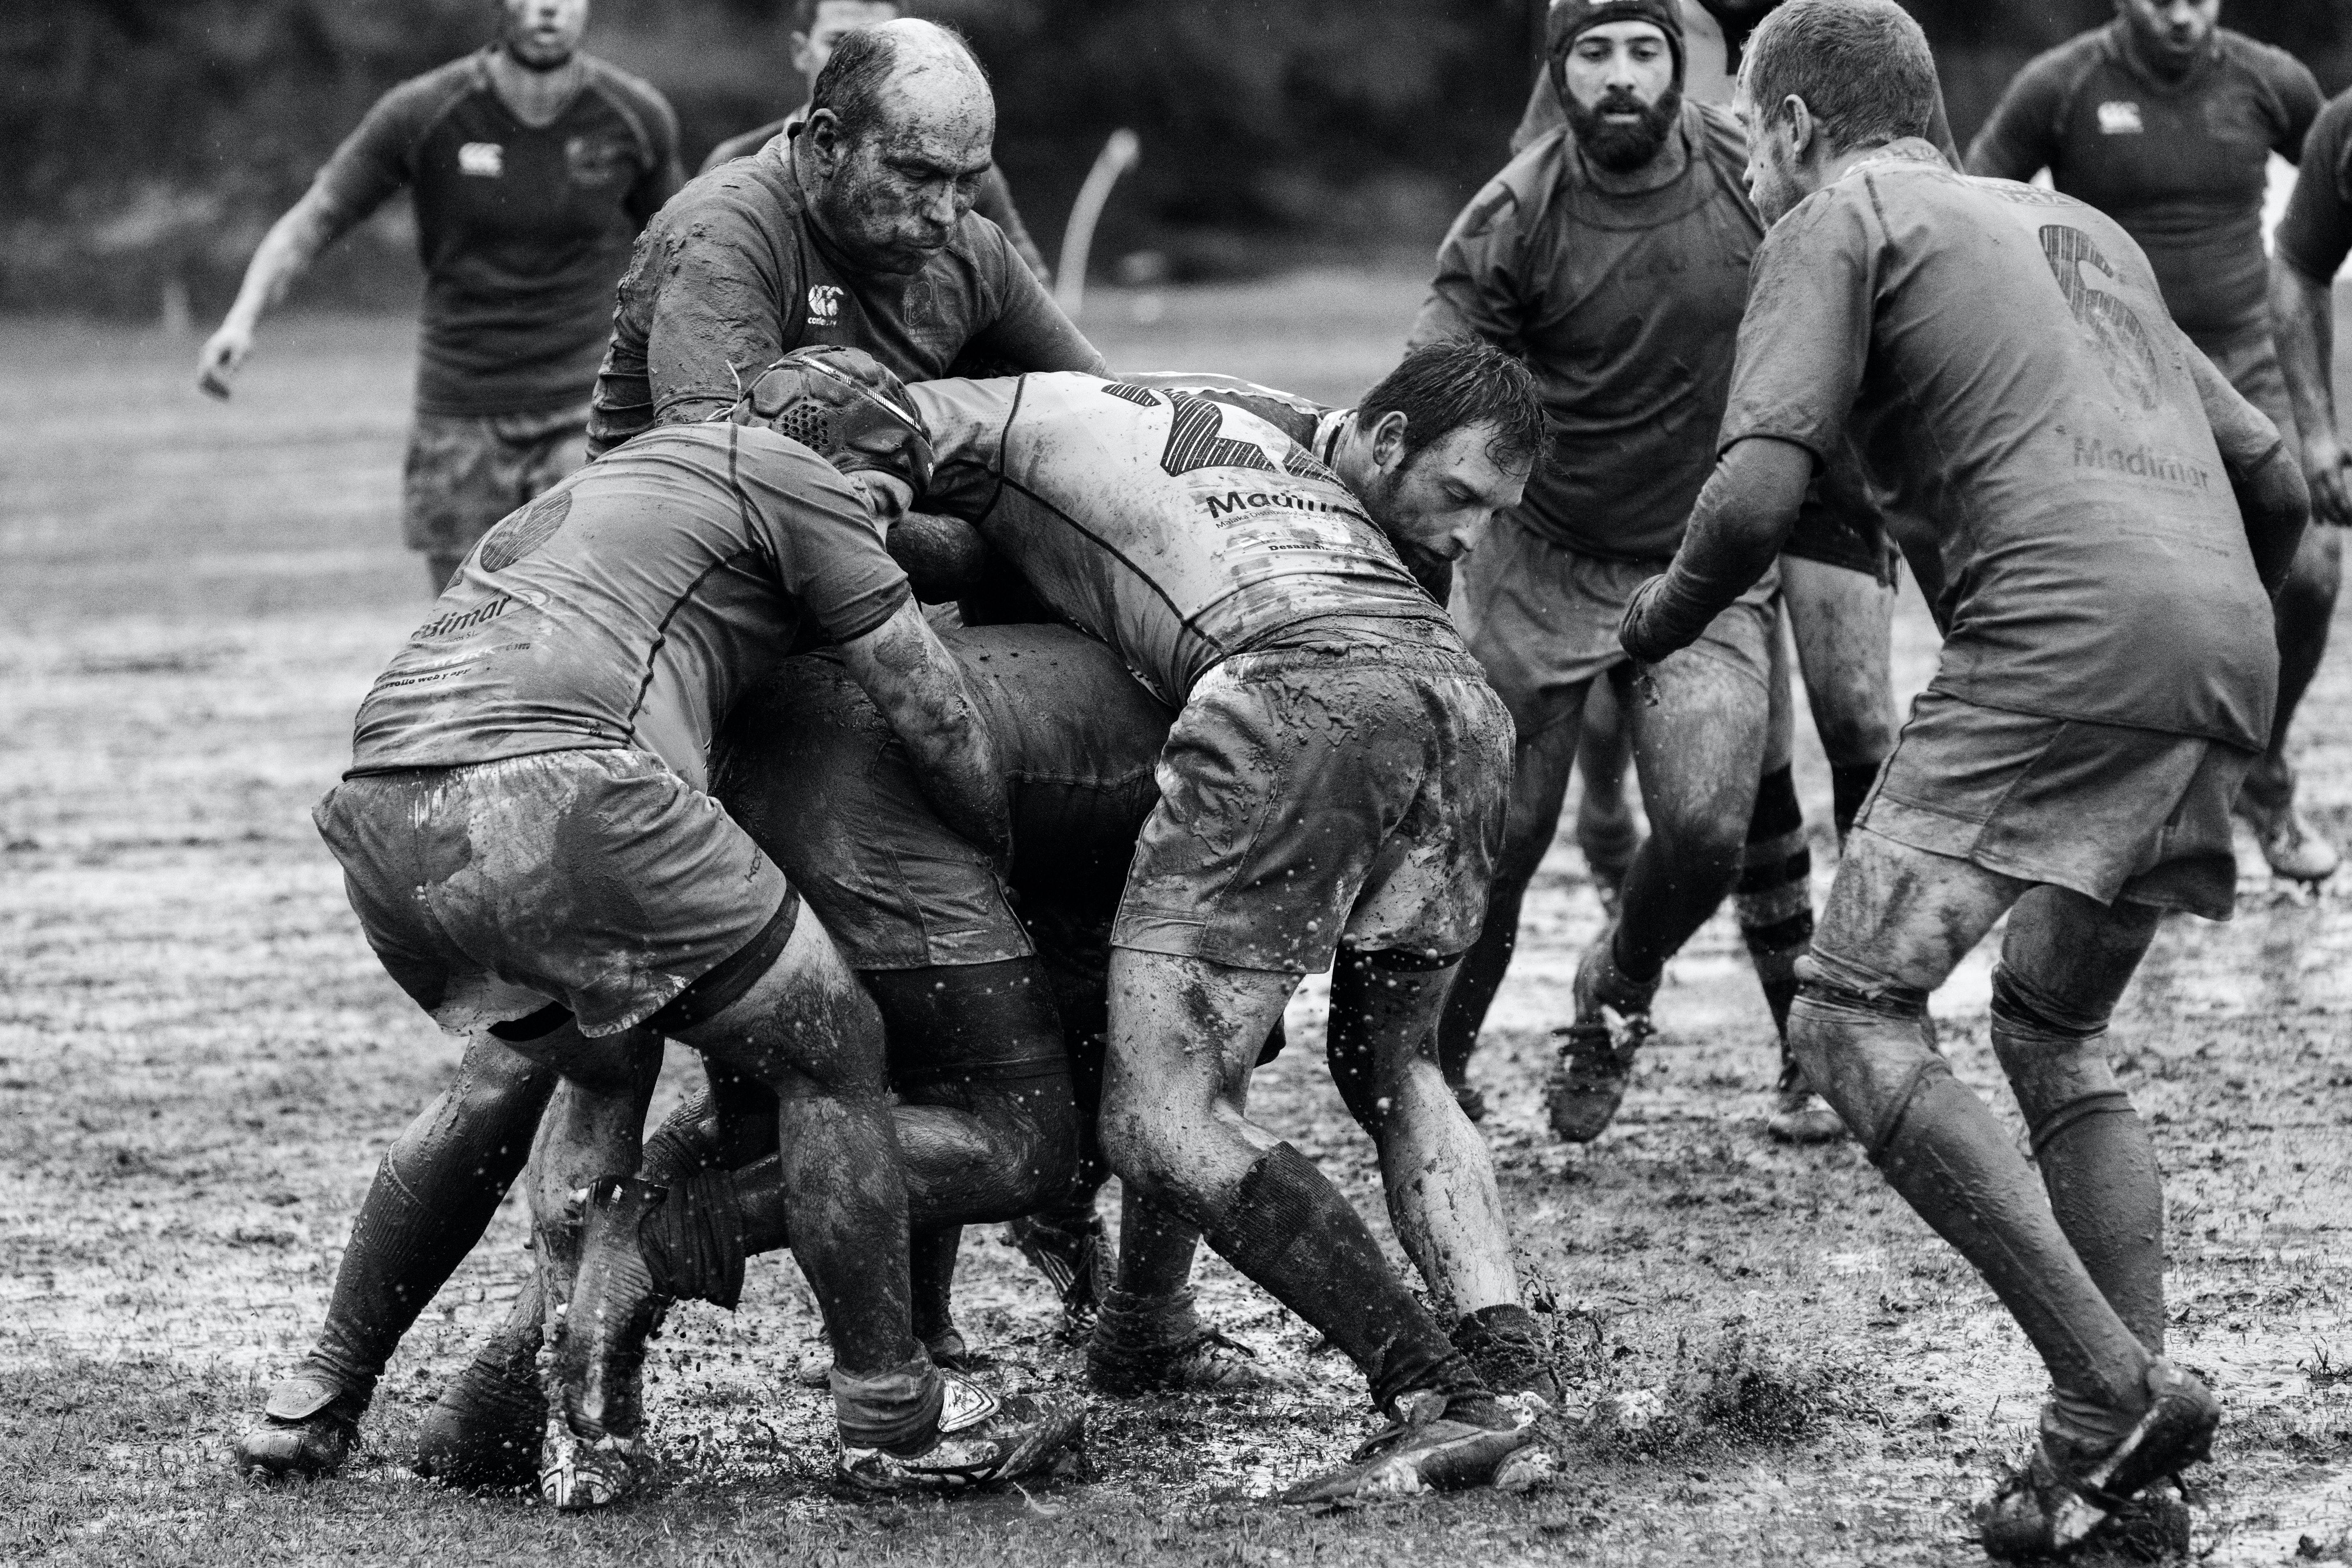 Rugby players tackle each other during a muddy game